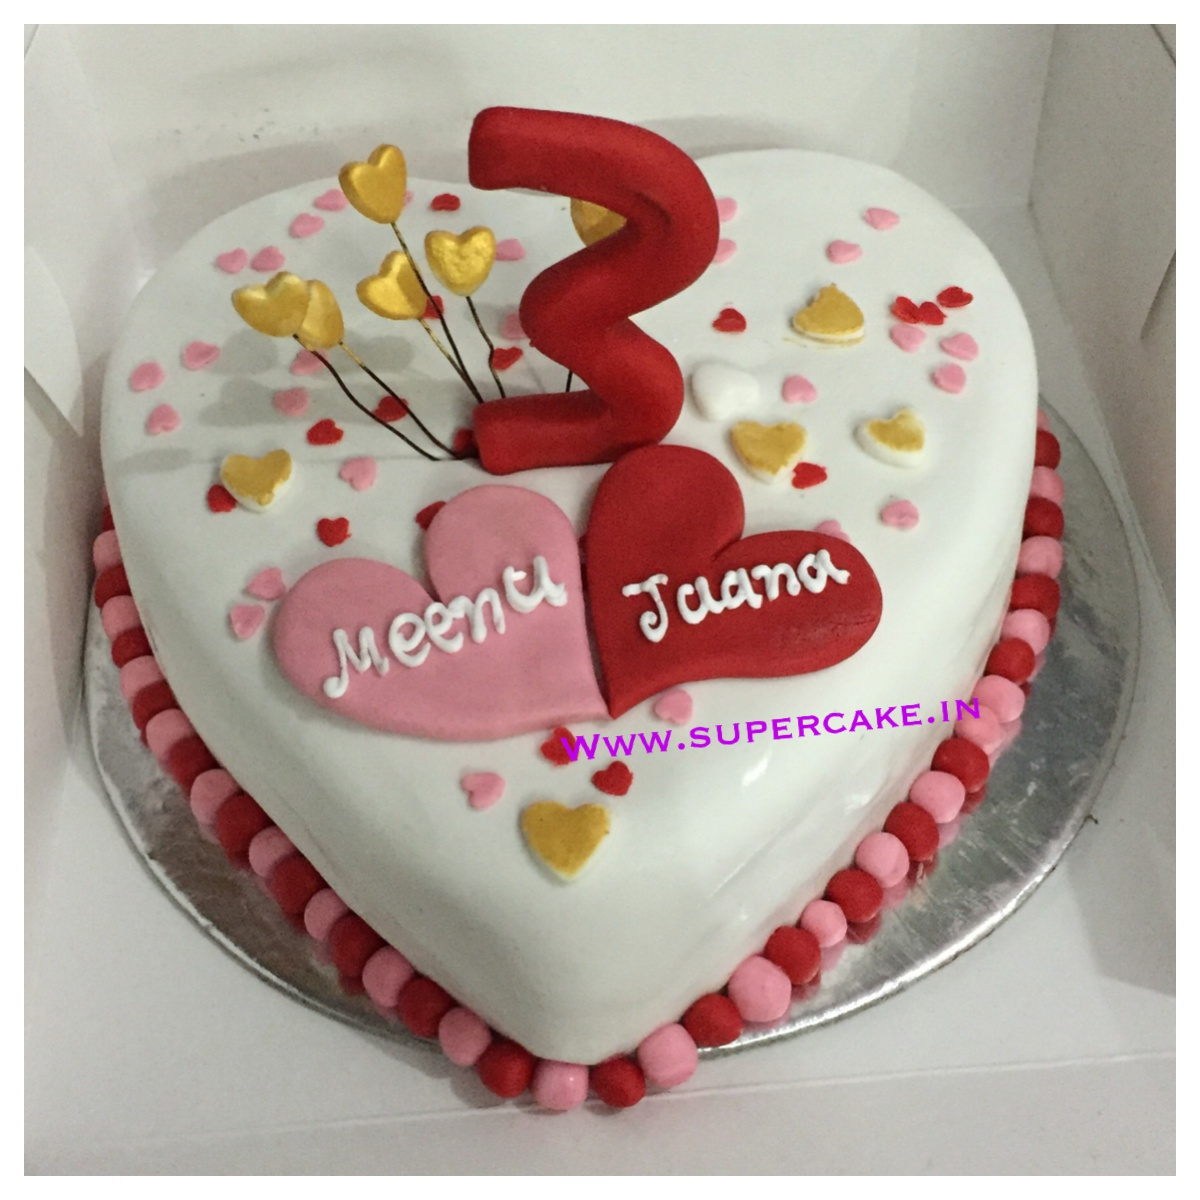 Online Cake Delivery In Noida Midnight Cake Order Cake Store